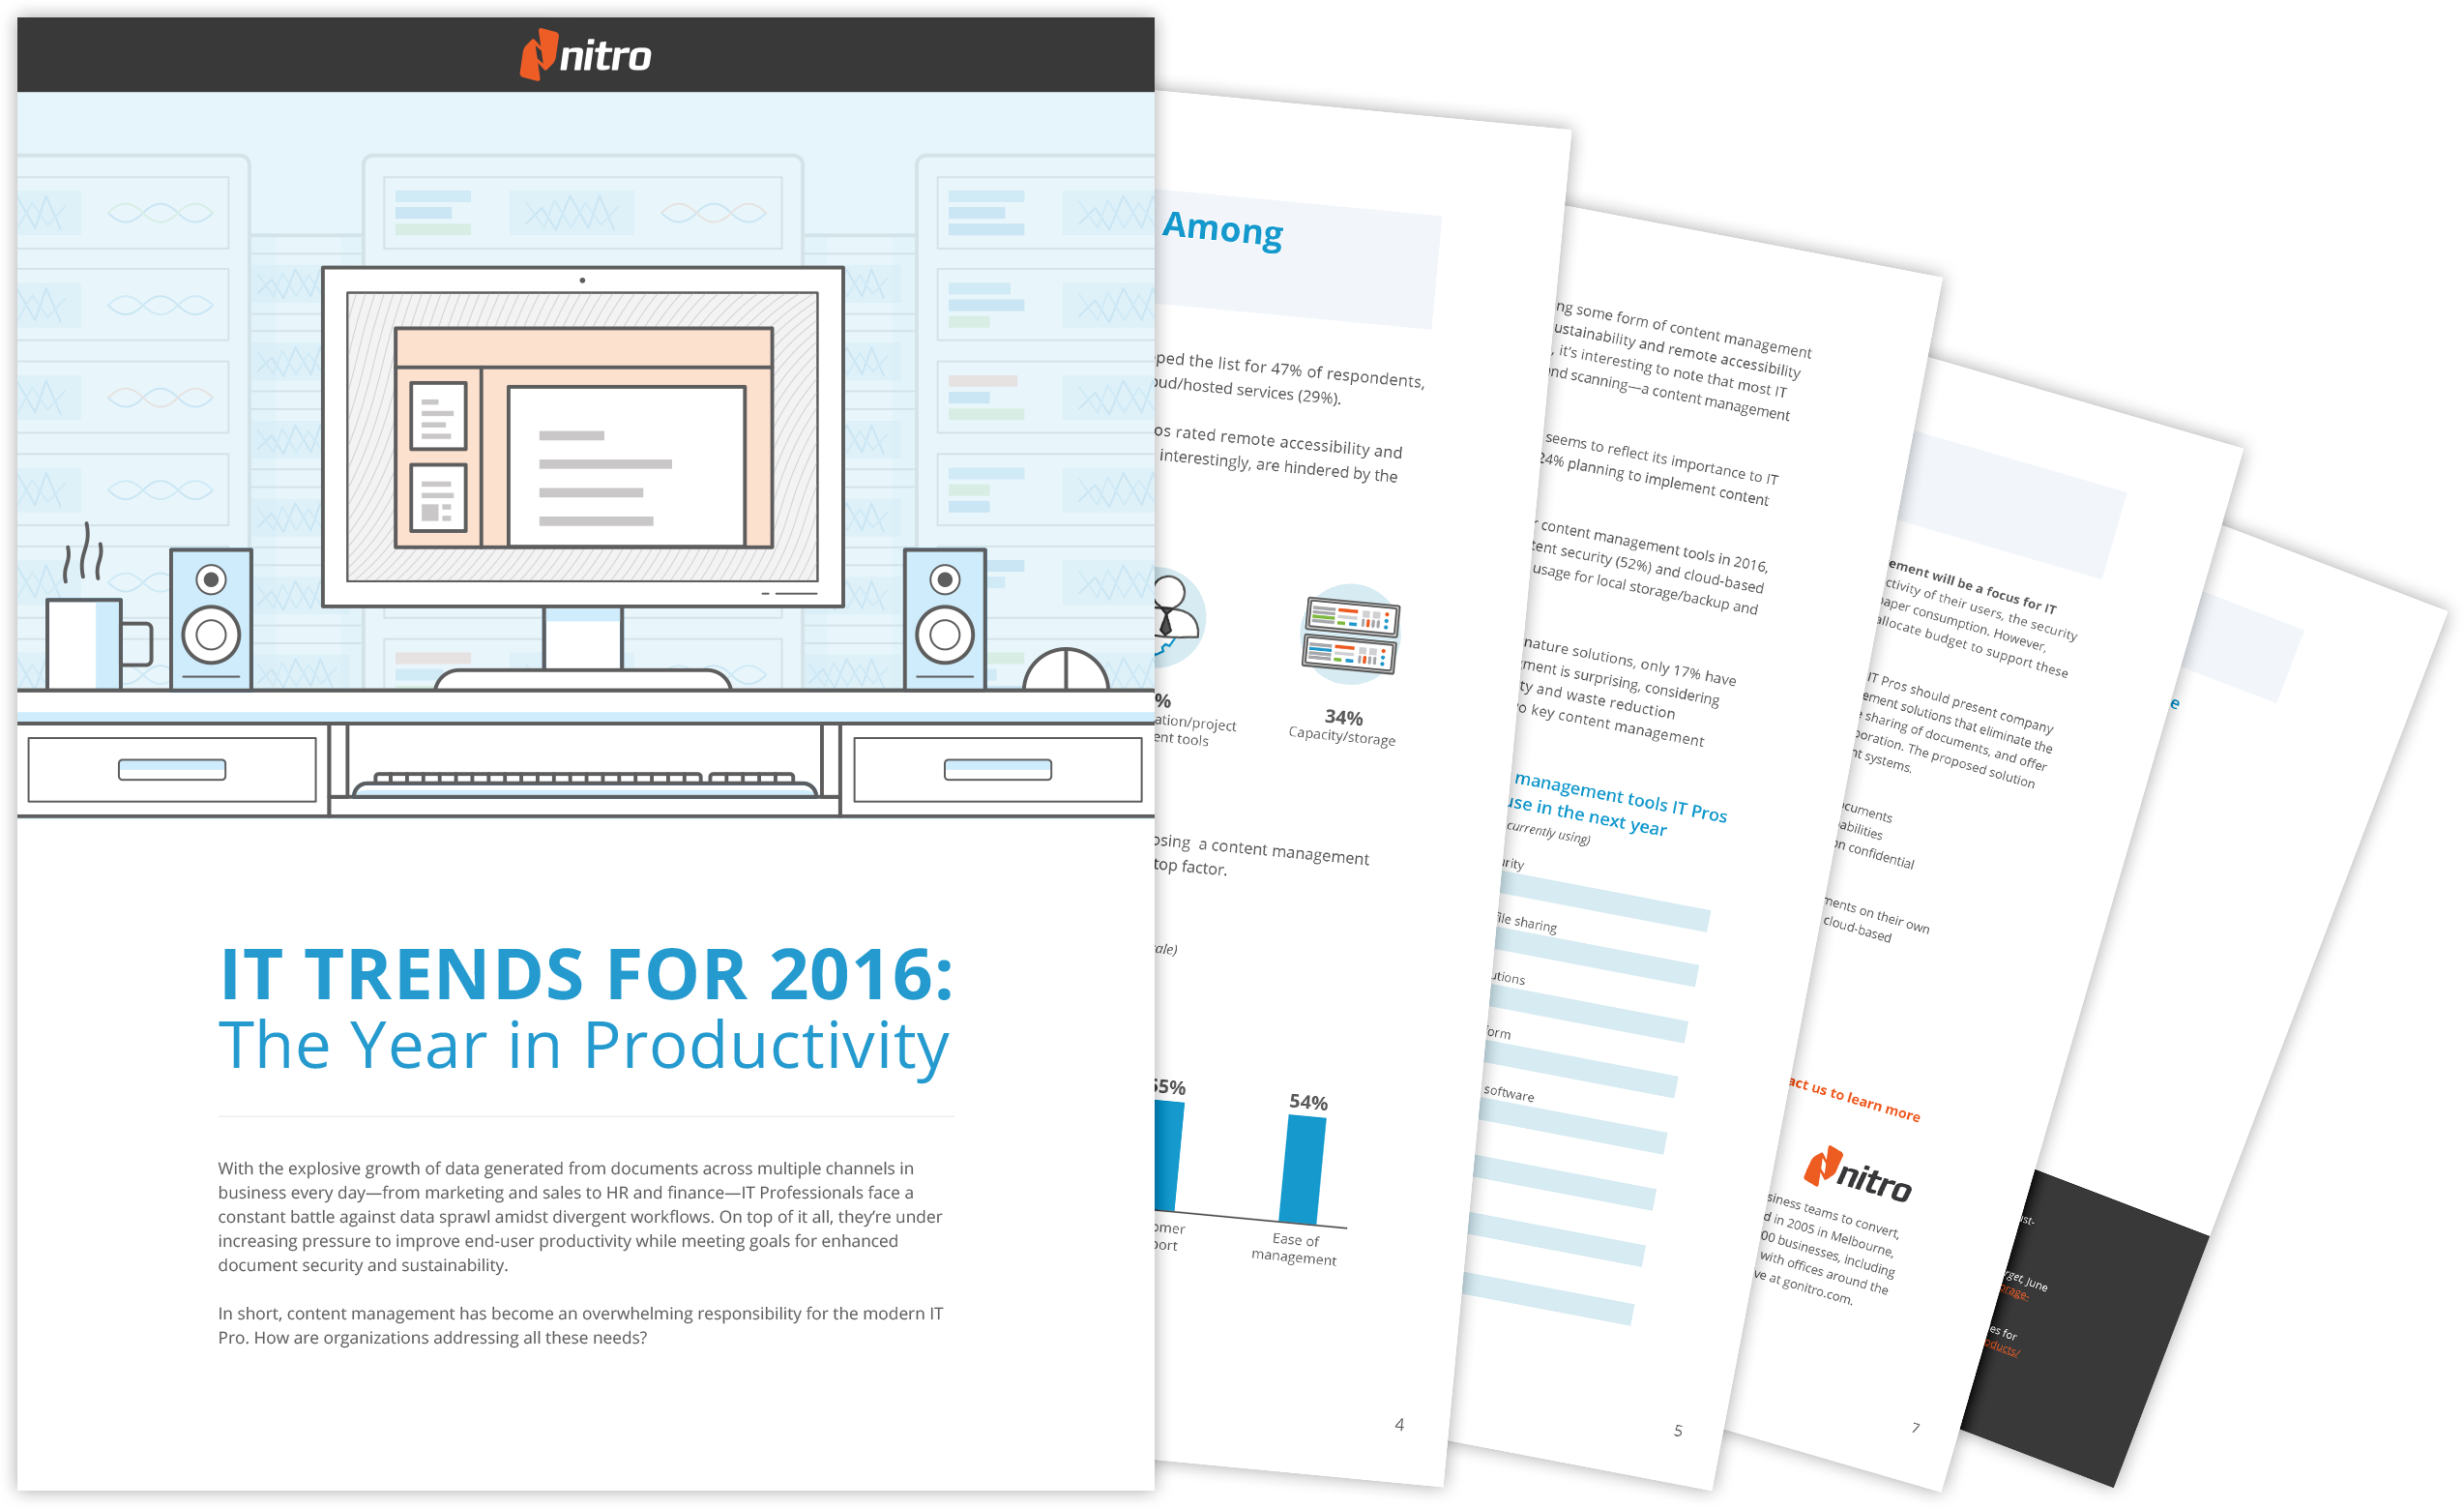 Report - 2016 Information Technology Trends: Productivity, Content Management, and Security